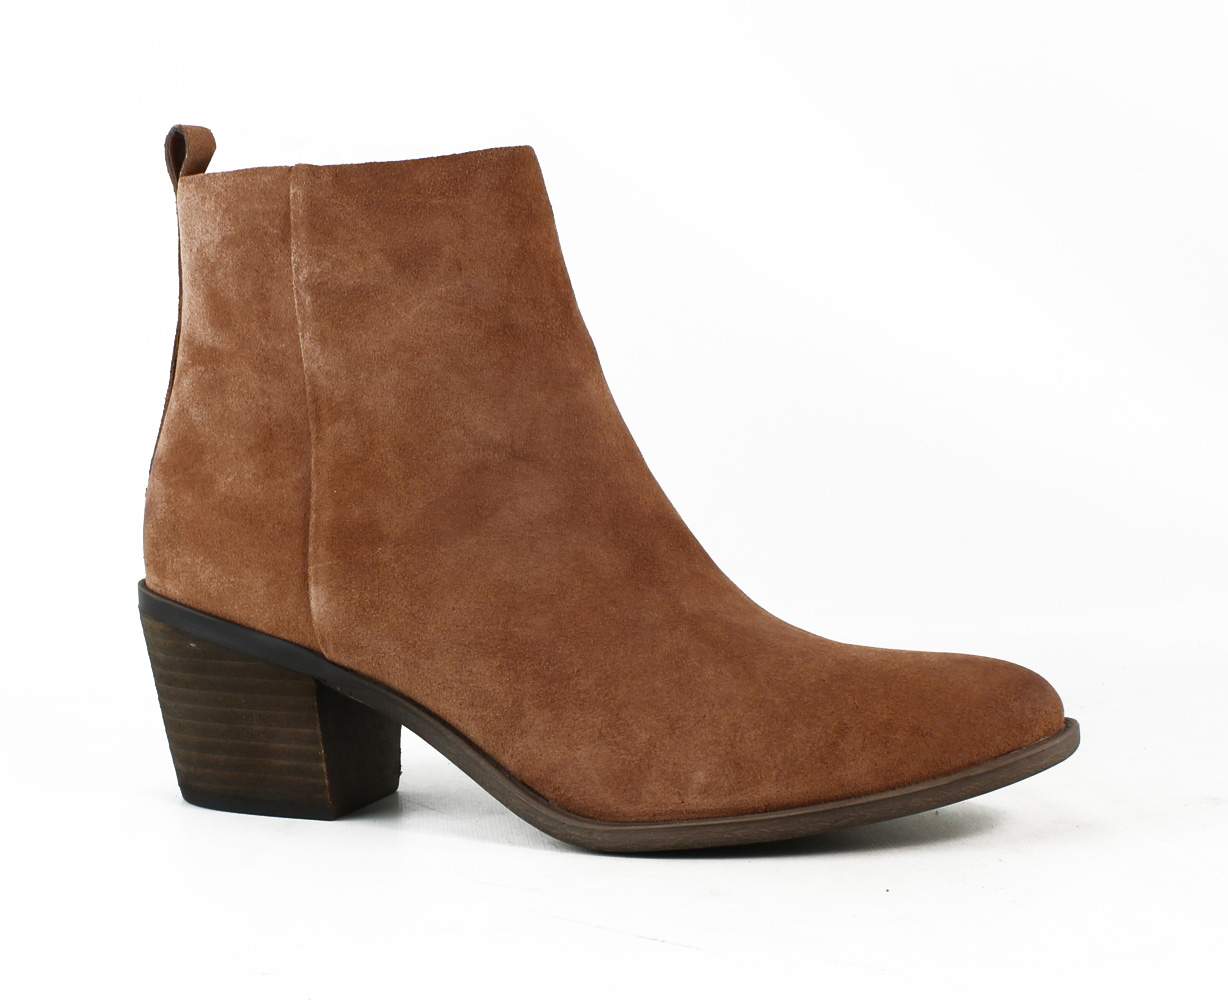 New Lucky Brand Womens Lk-Natania Toffee Ankle Boots Size 10